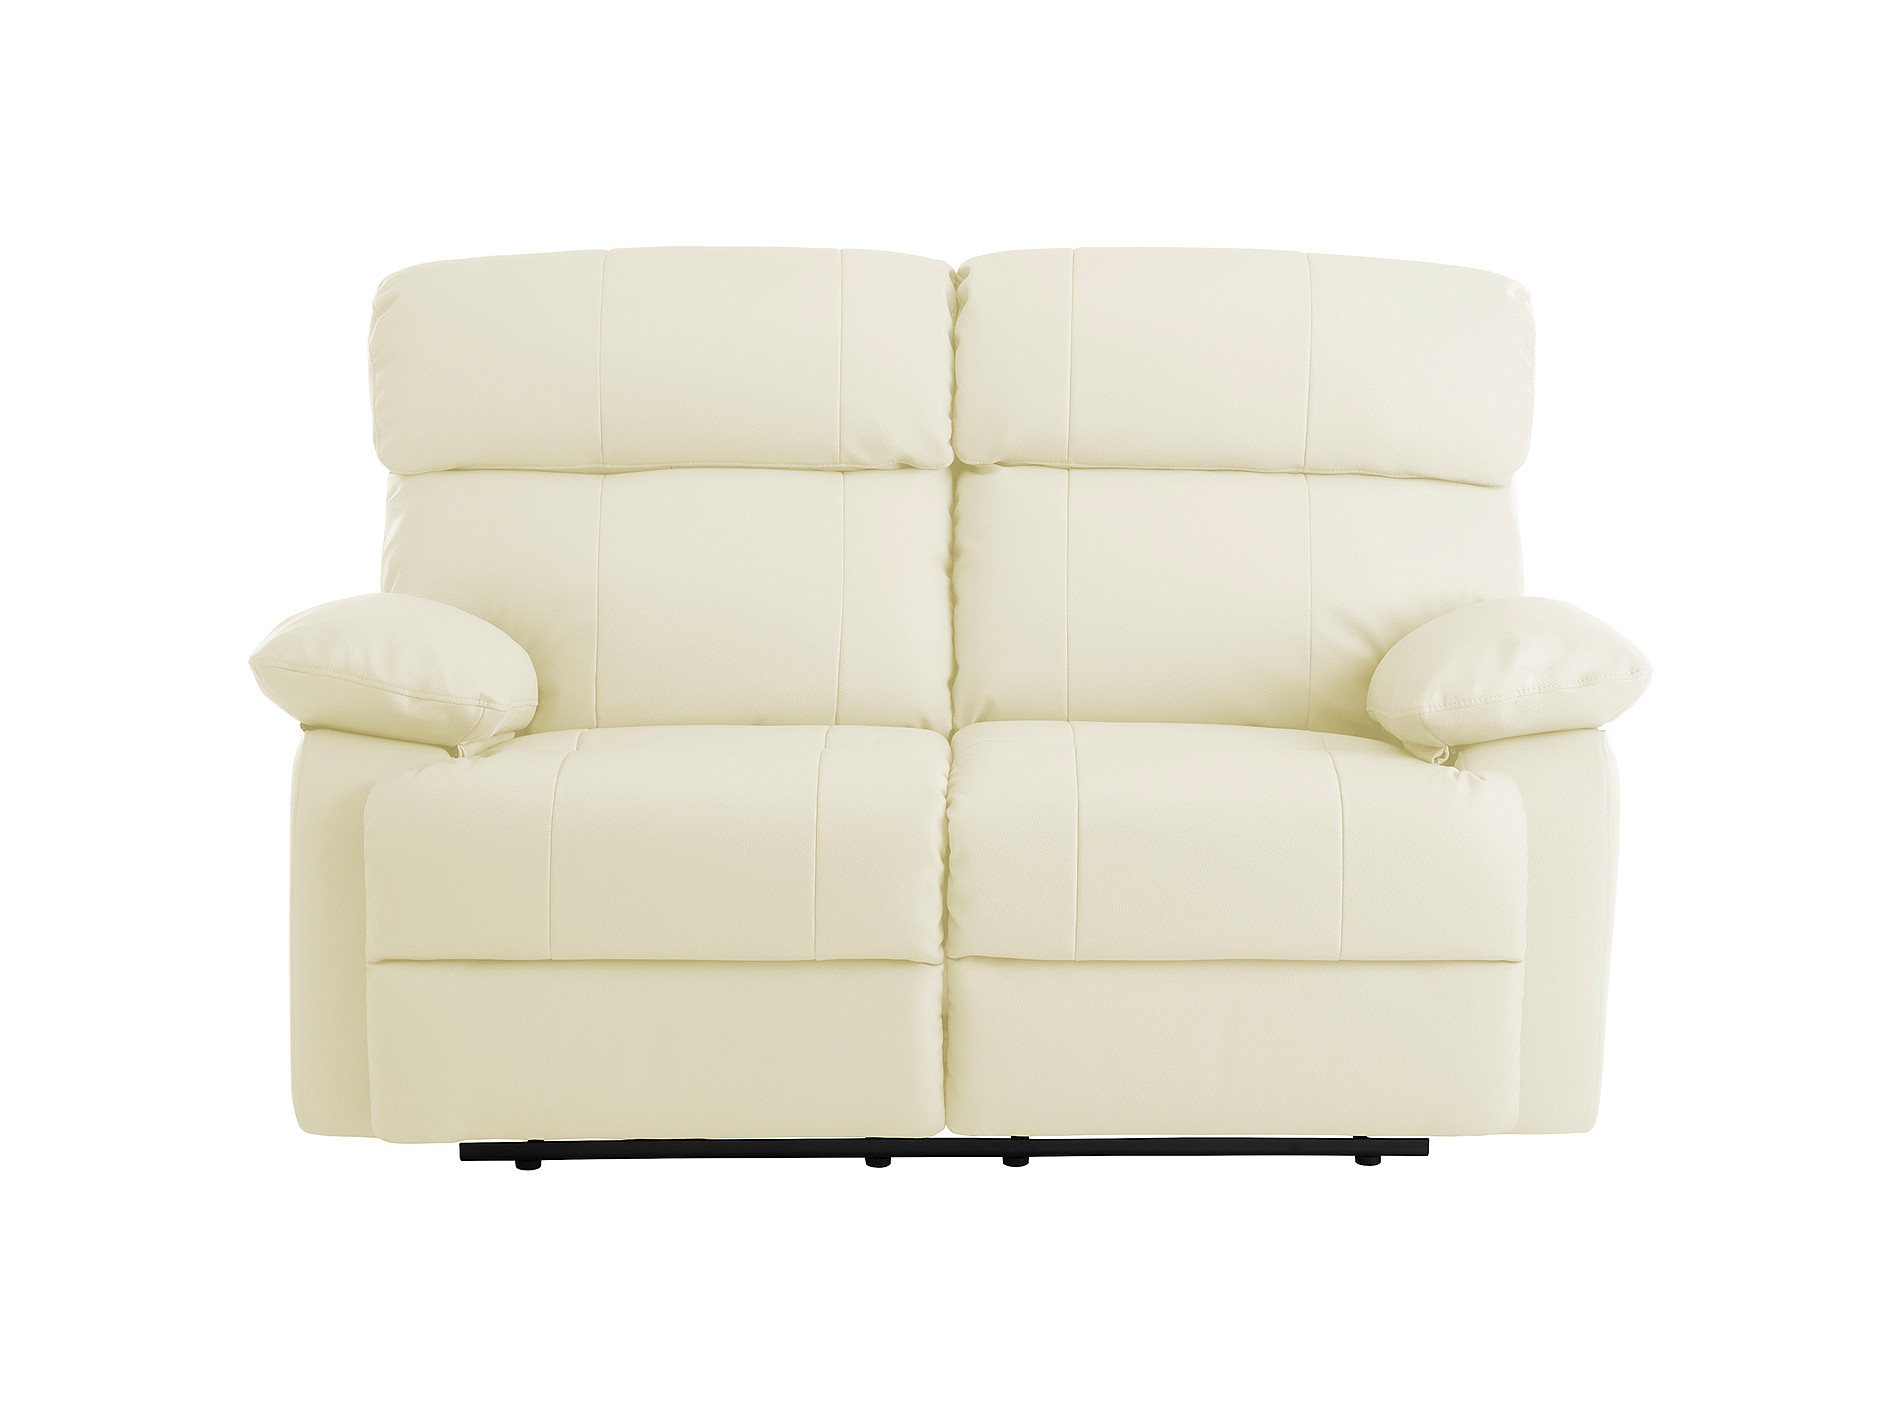 Quantity for Small cream sofa